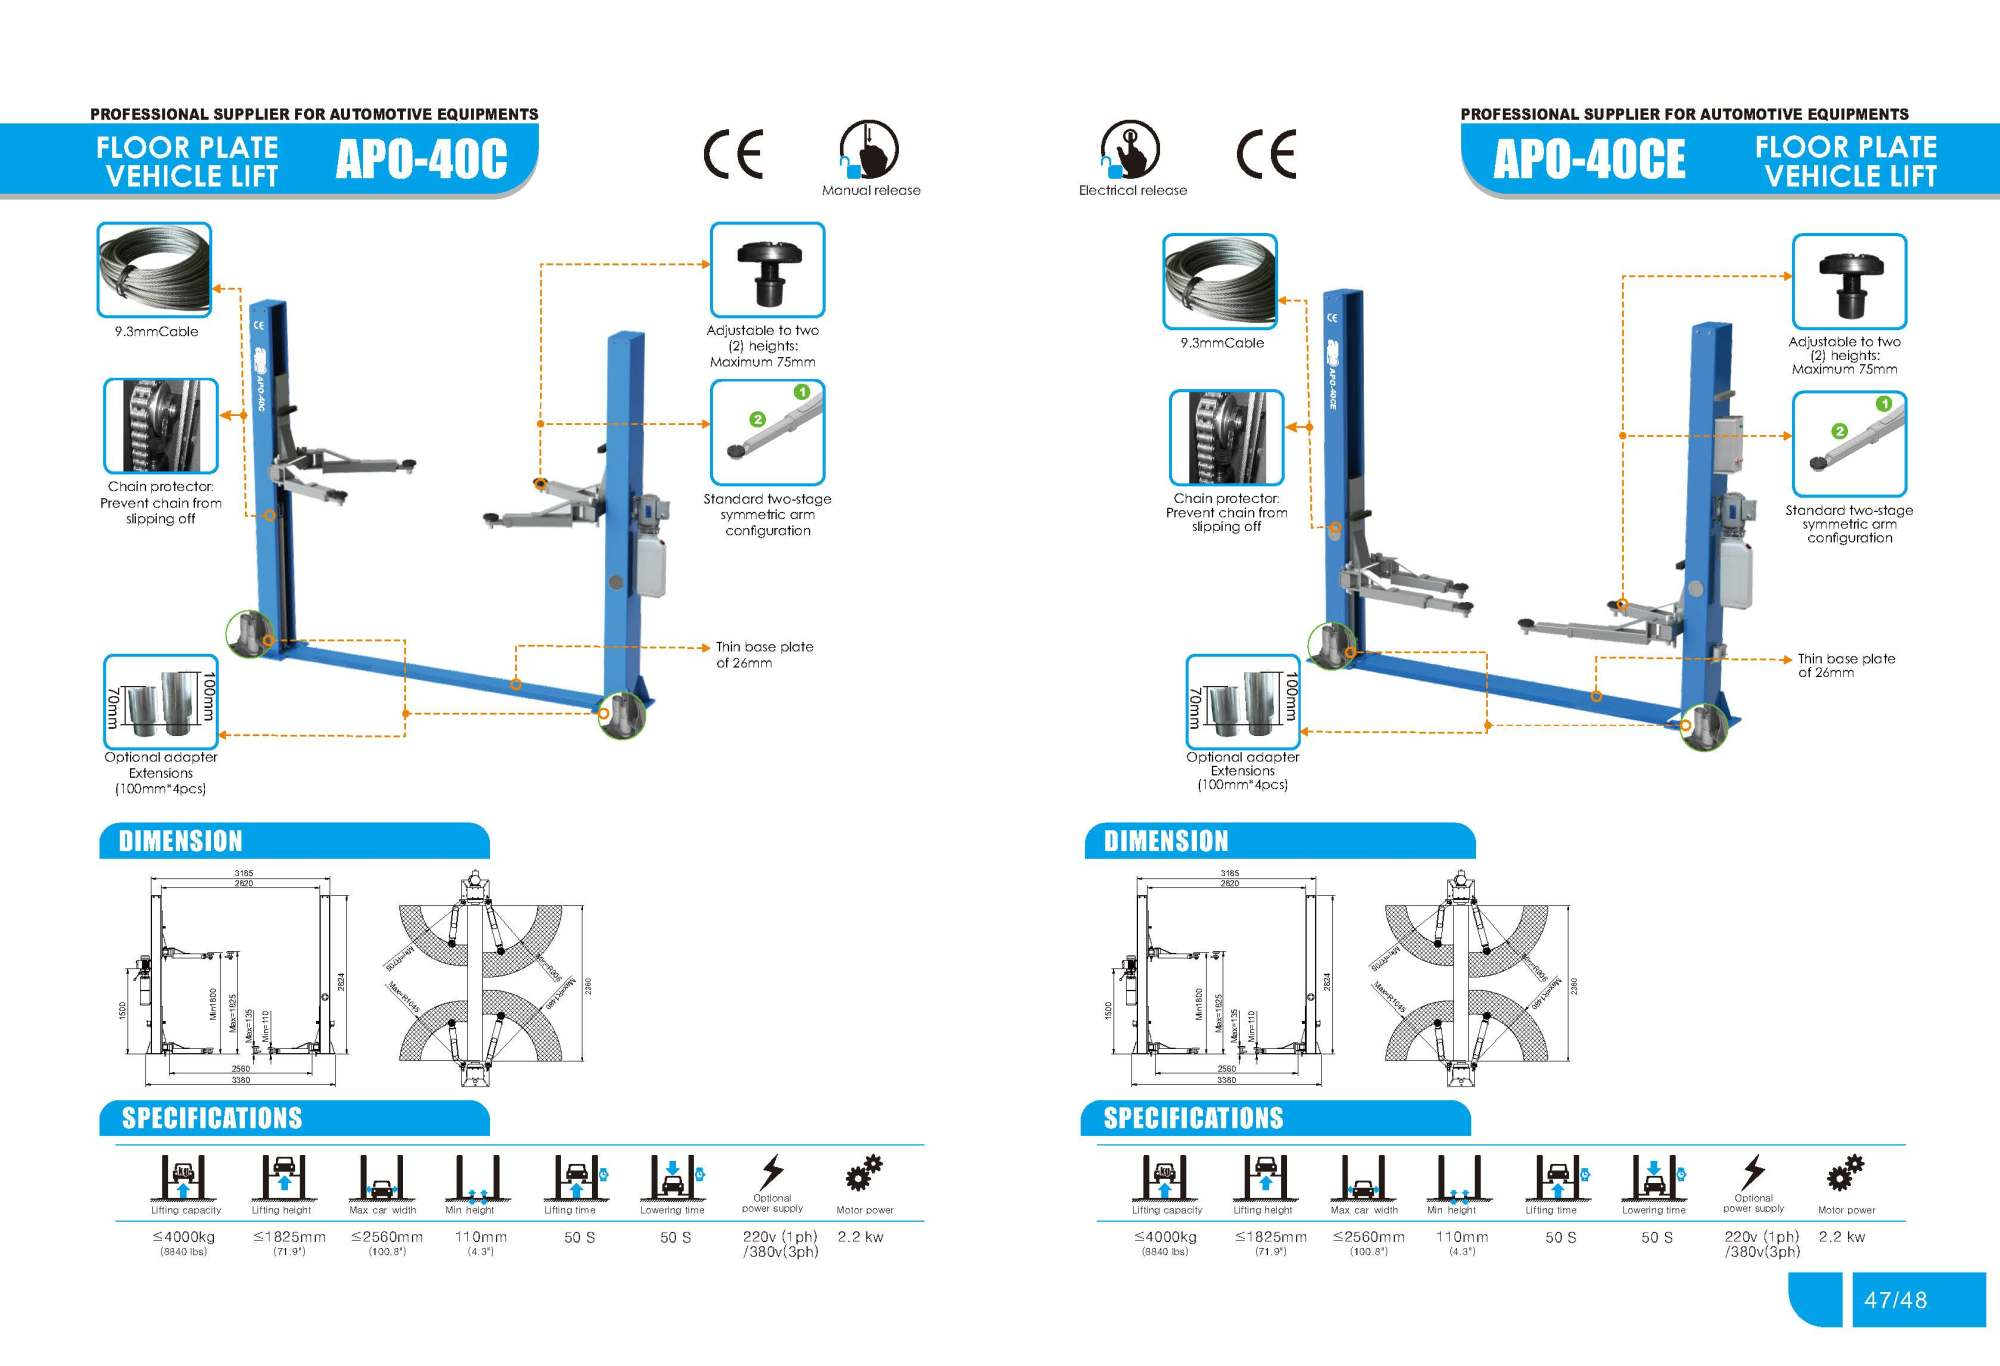 hight resolution of car lift schematic wiring diagramcar lift schematic wiring diagramtwo post car lift schematic wiring diagramwiring diagram